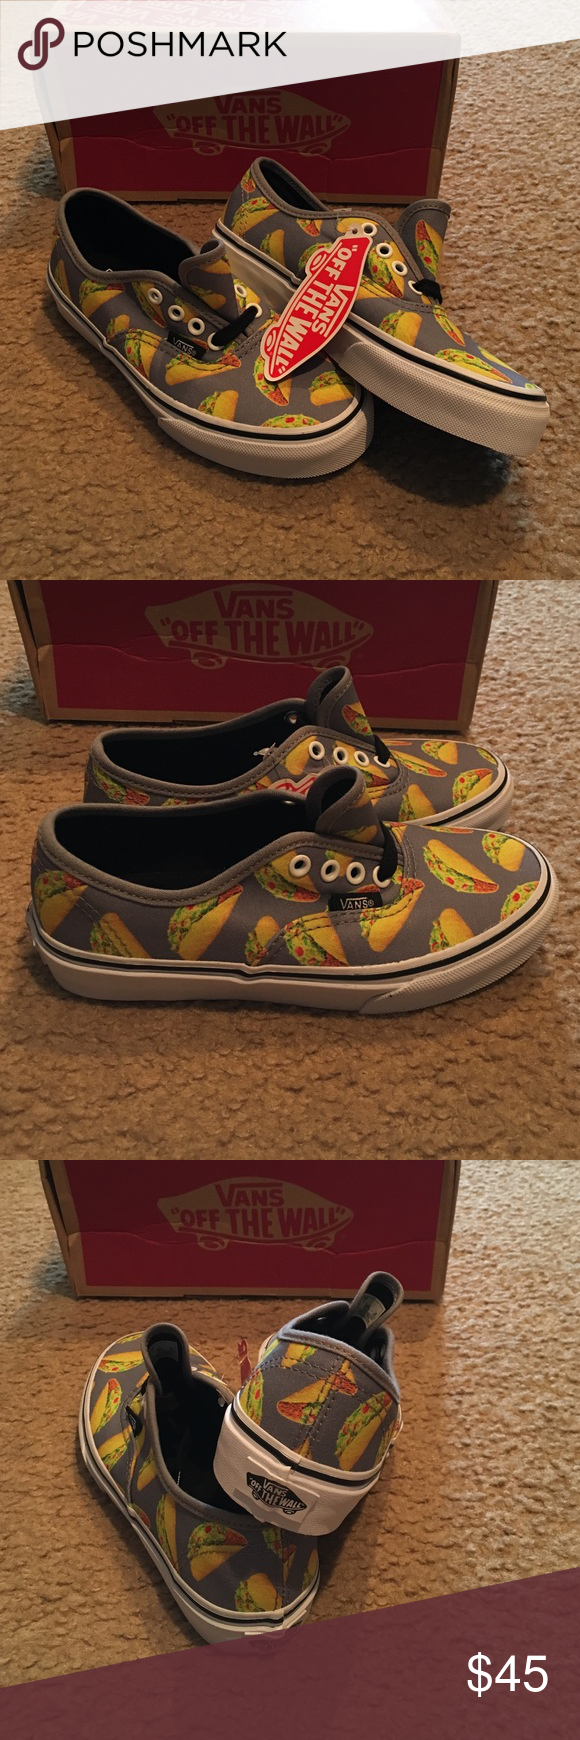 03368e2fbf83 Vans Late Night frost gray Taco sneakers Vans Kids Authentic Late Night  shoe. Boys  low profile shoe. Taco print. Canvas uppers. Rubber waffle  bottom sole.